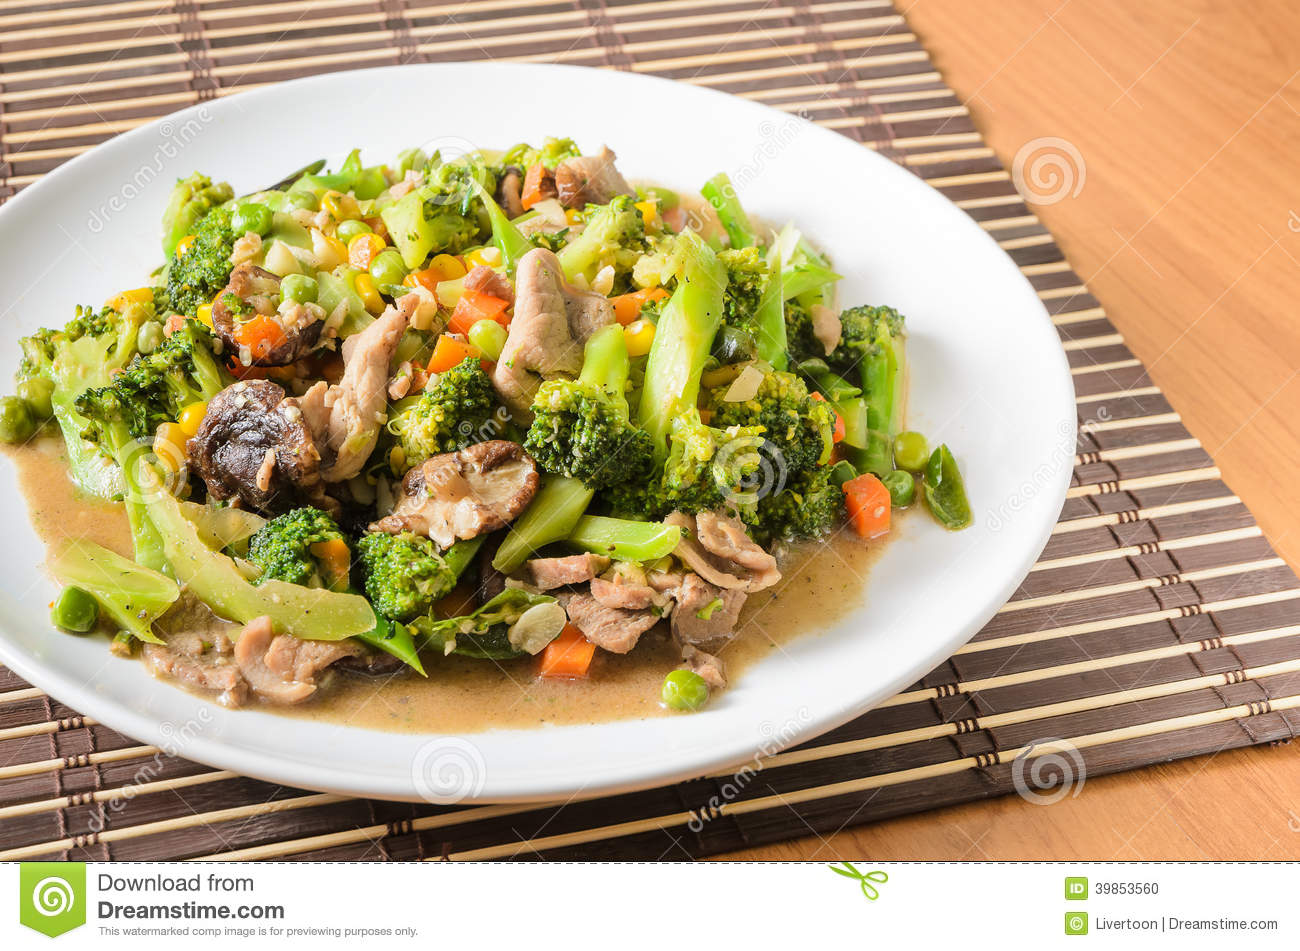 Stir fried Broccoli ,Carrot, Sweet corn, Green Bean